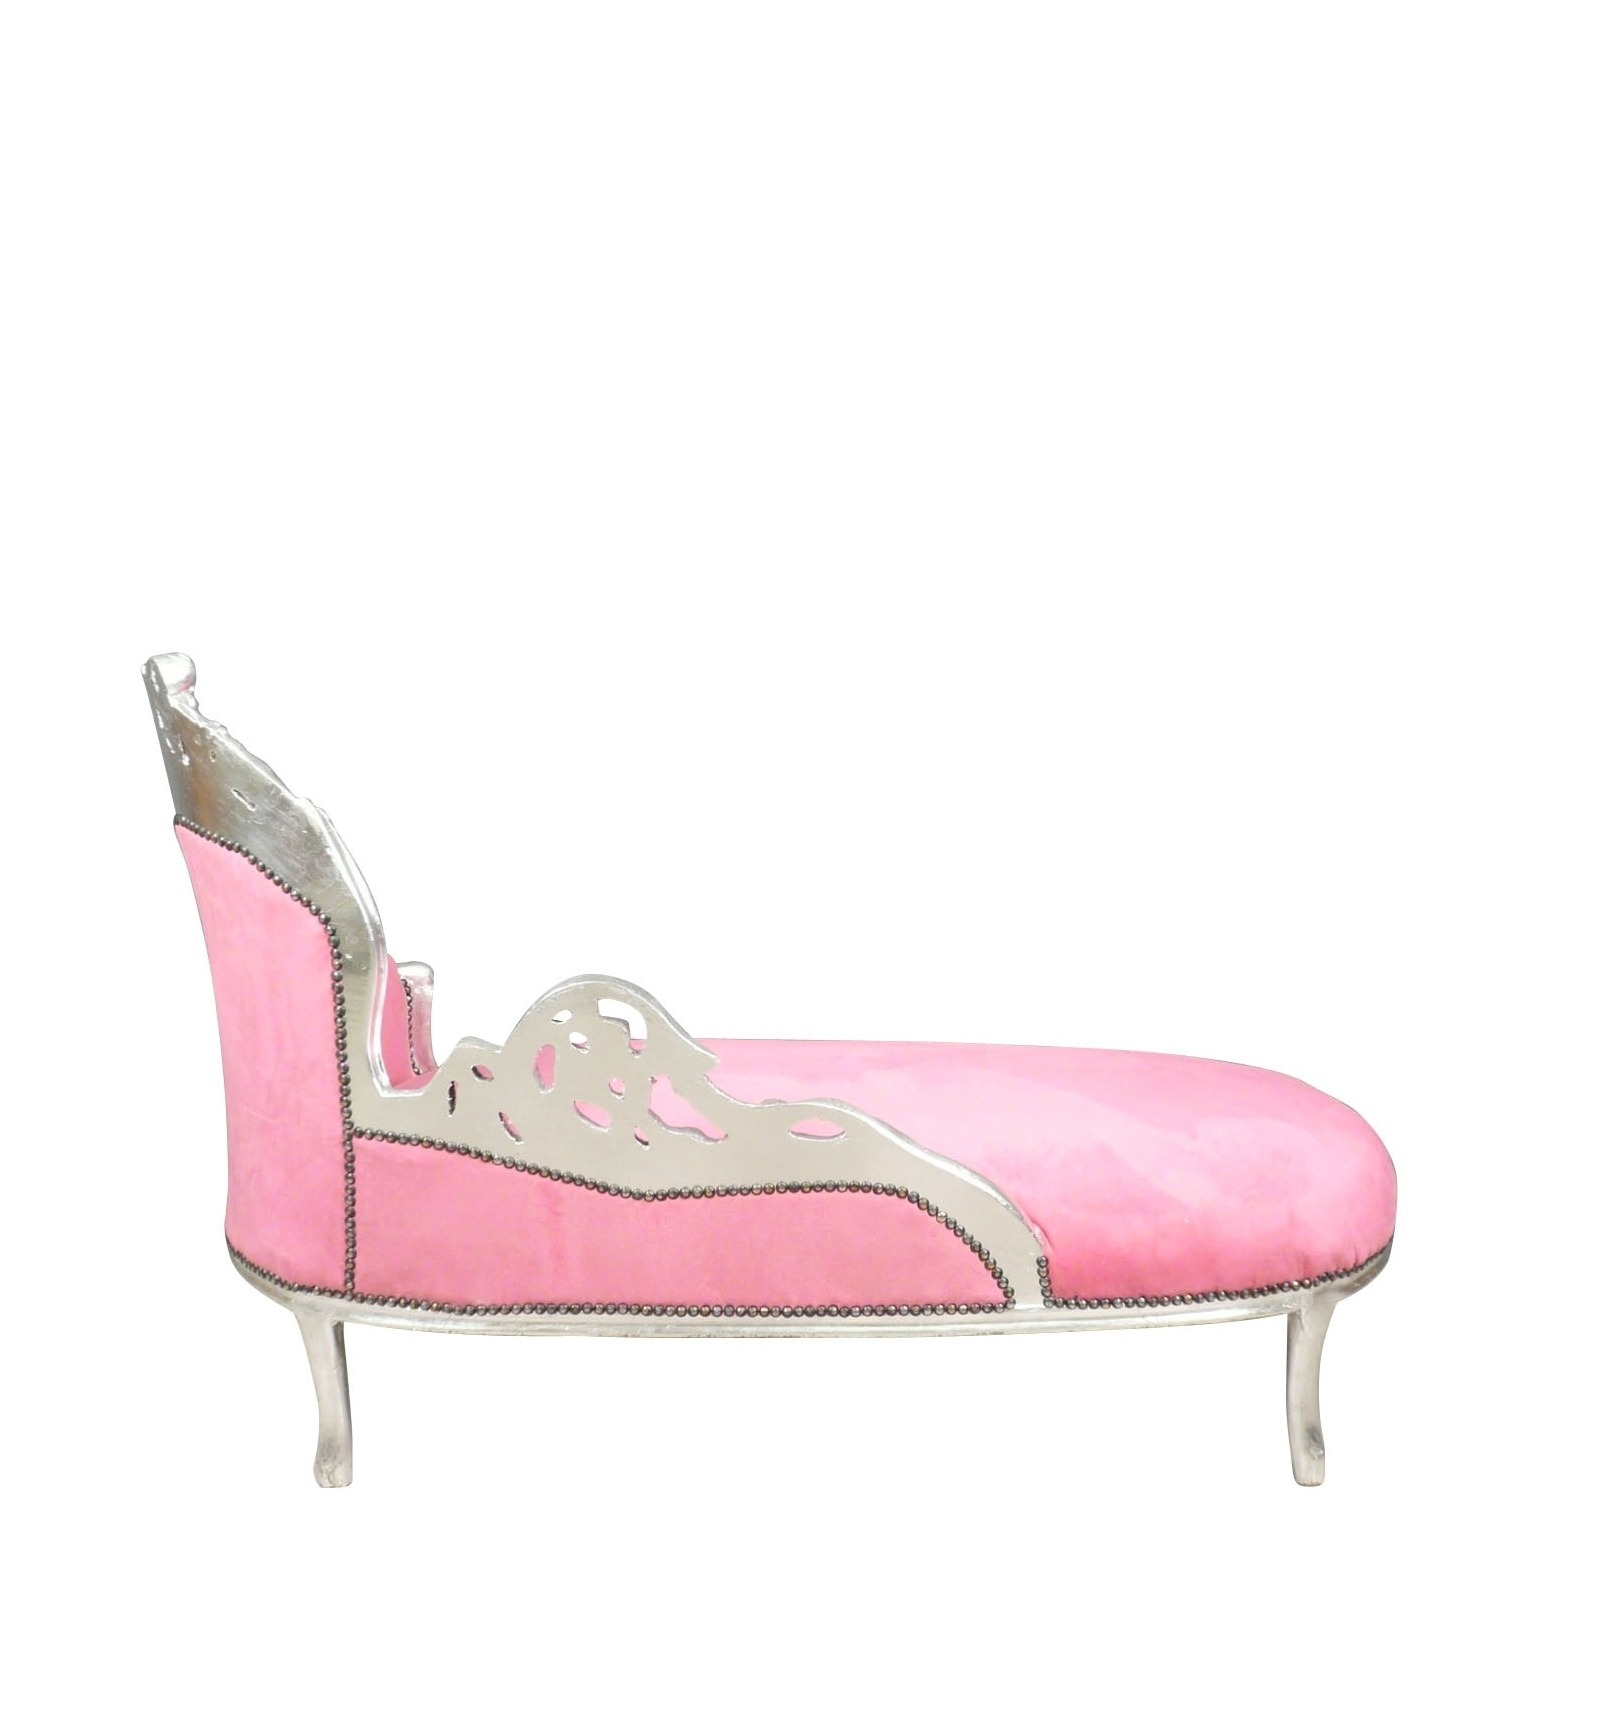 Chaise lounge baroque pink and silver armchair chair for Baroque chaise lounge sofa